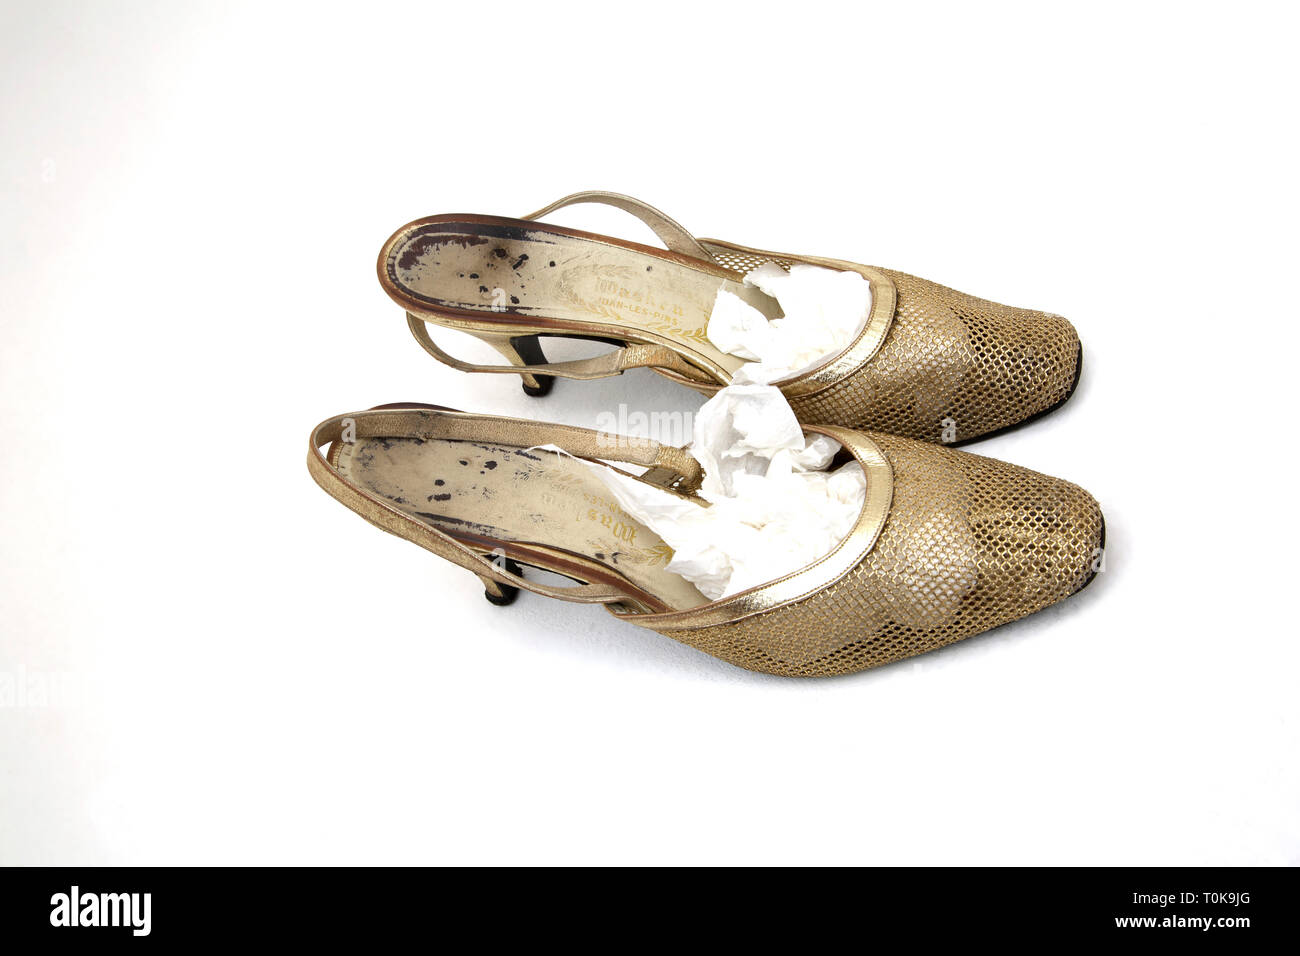 Worn 1950/60's Gold Mesh Sling Back Shoes - Stock Image